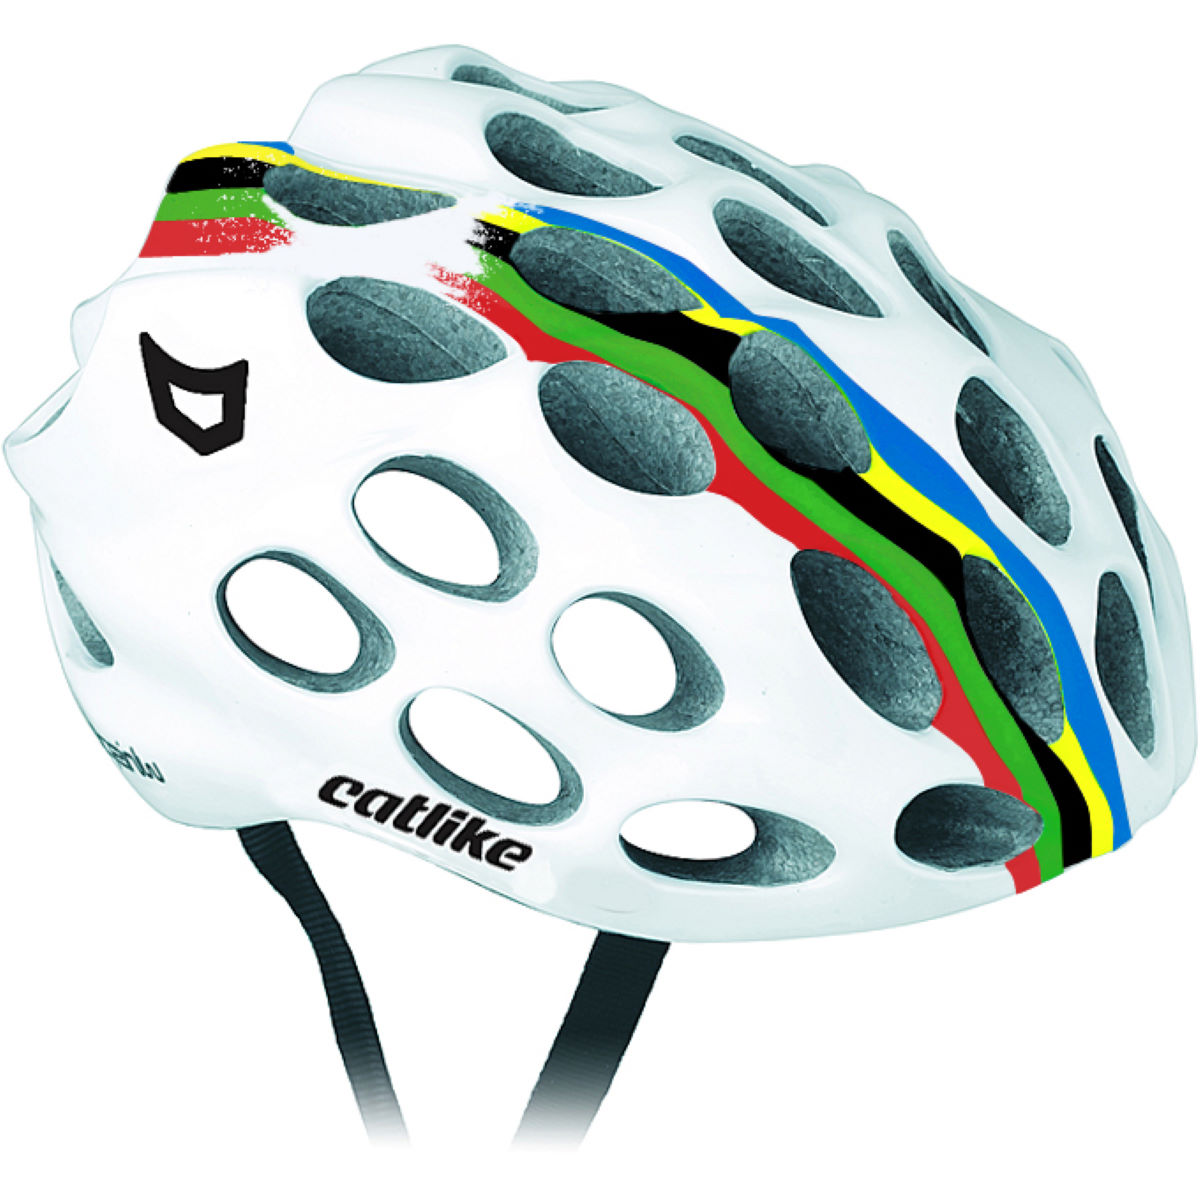 Casque Catlike Whisper - S World Champ Casques de route